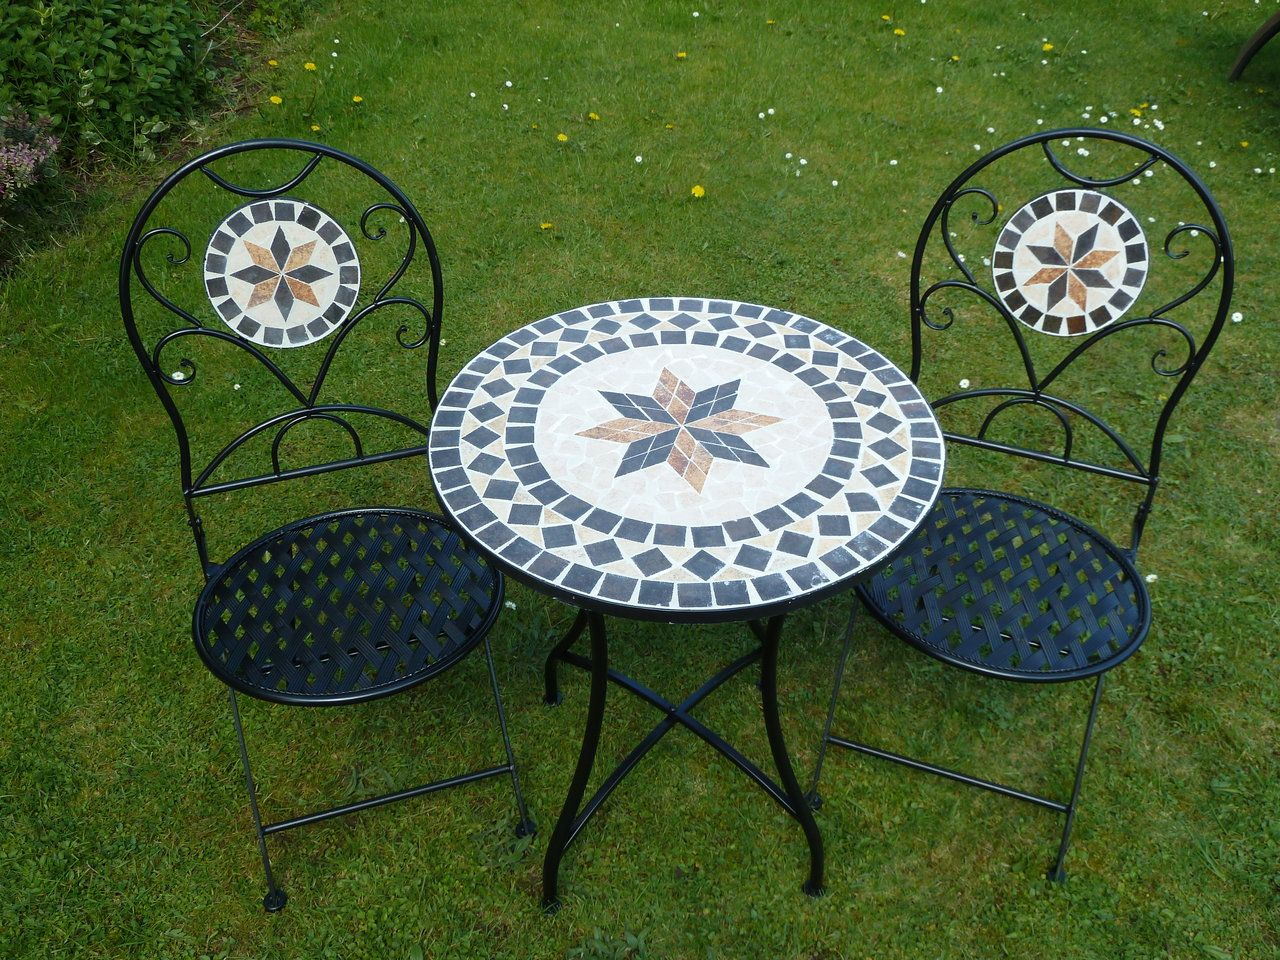 mosaic bistro table sets | Piece Metal Mosaic Bistro Set For Two 60cm Table and 2 Folding Chairs . & UK-Gardens 3 Piece Metal Mosaic Garden Bistro Set For Two 60cm Table ...